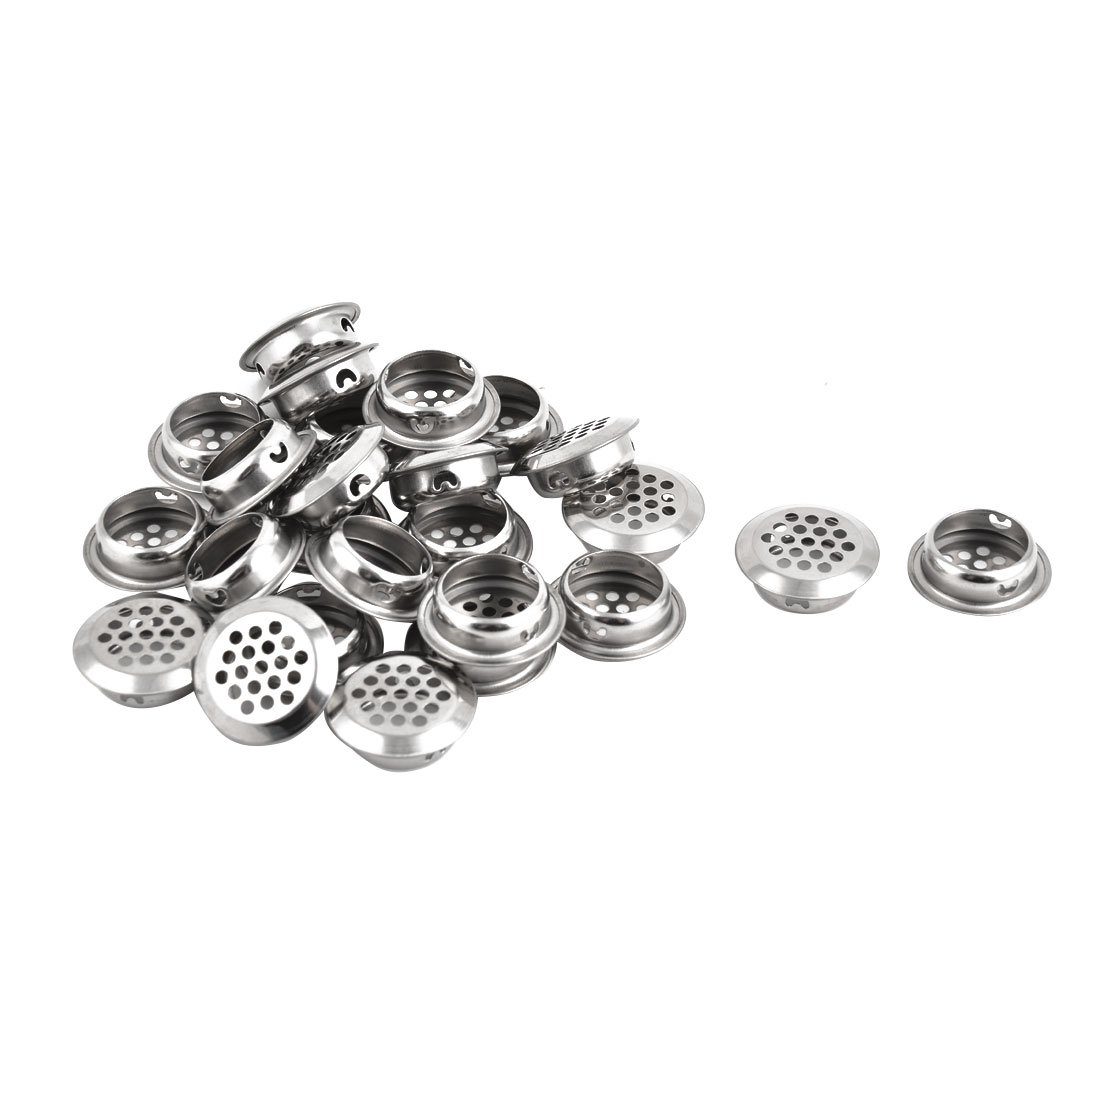 uxcell Stainless Steel Apartment Bathroom Round Mesh Hole Basin Sink Residue Strainer 25pcs